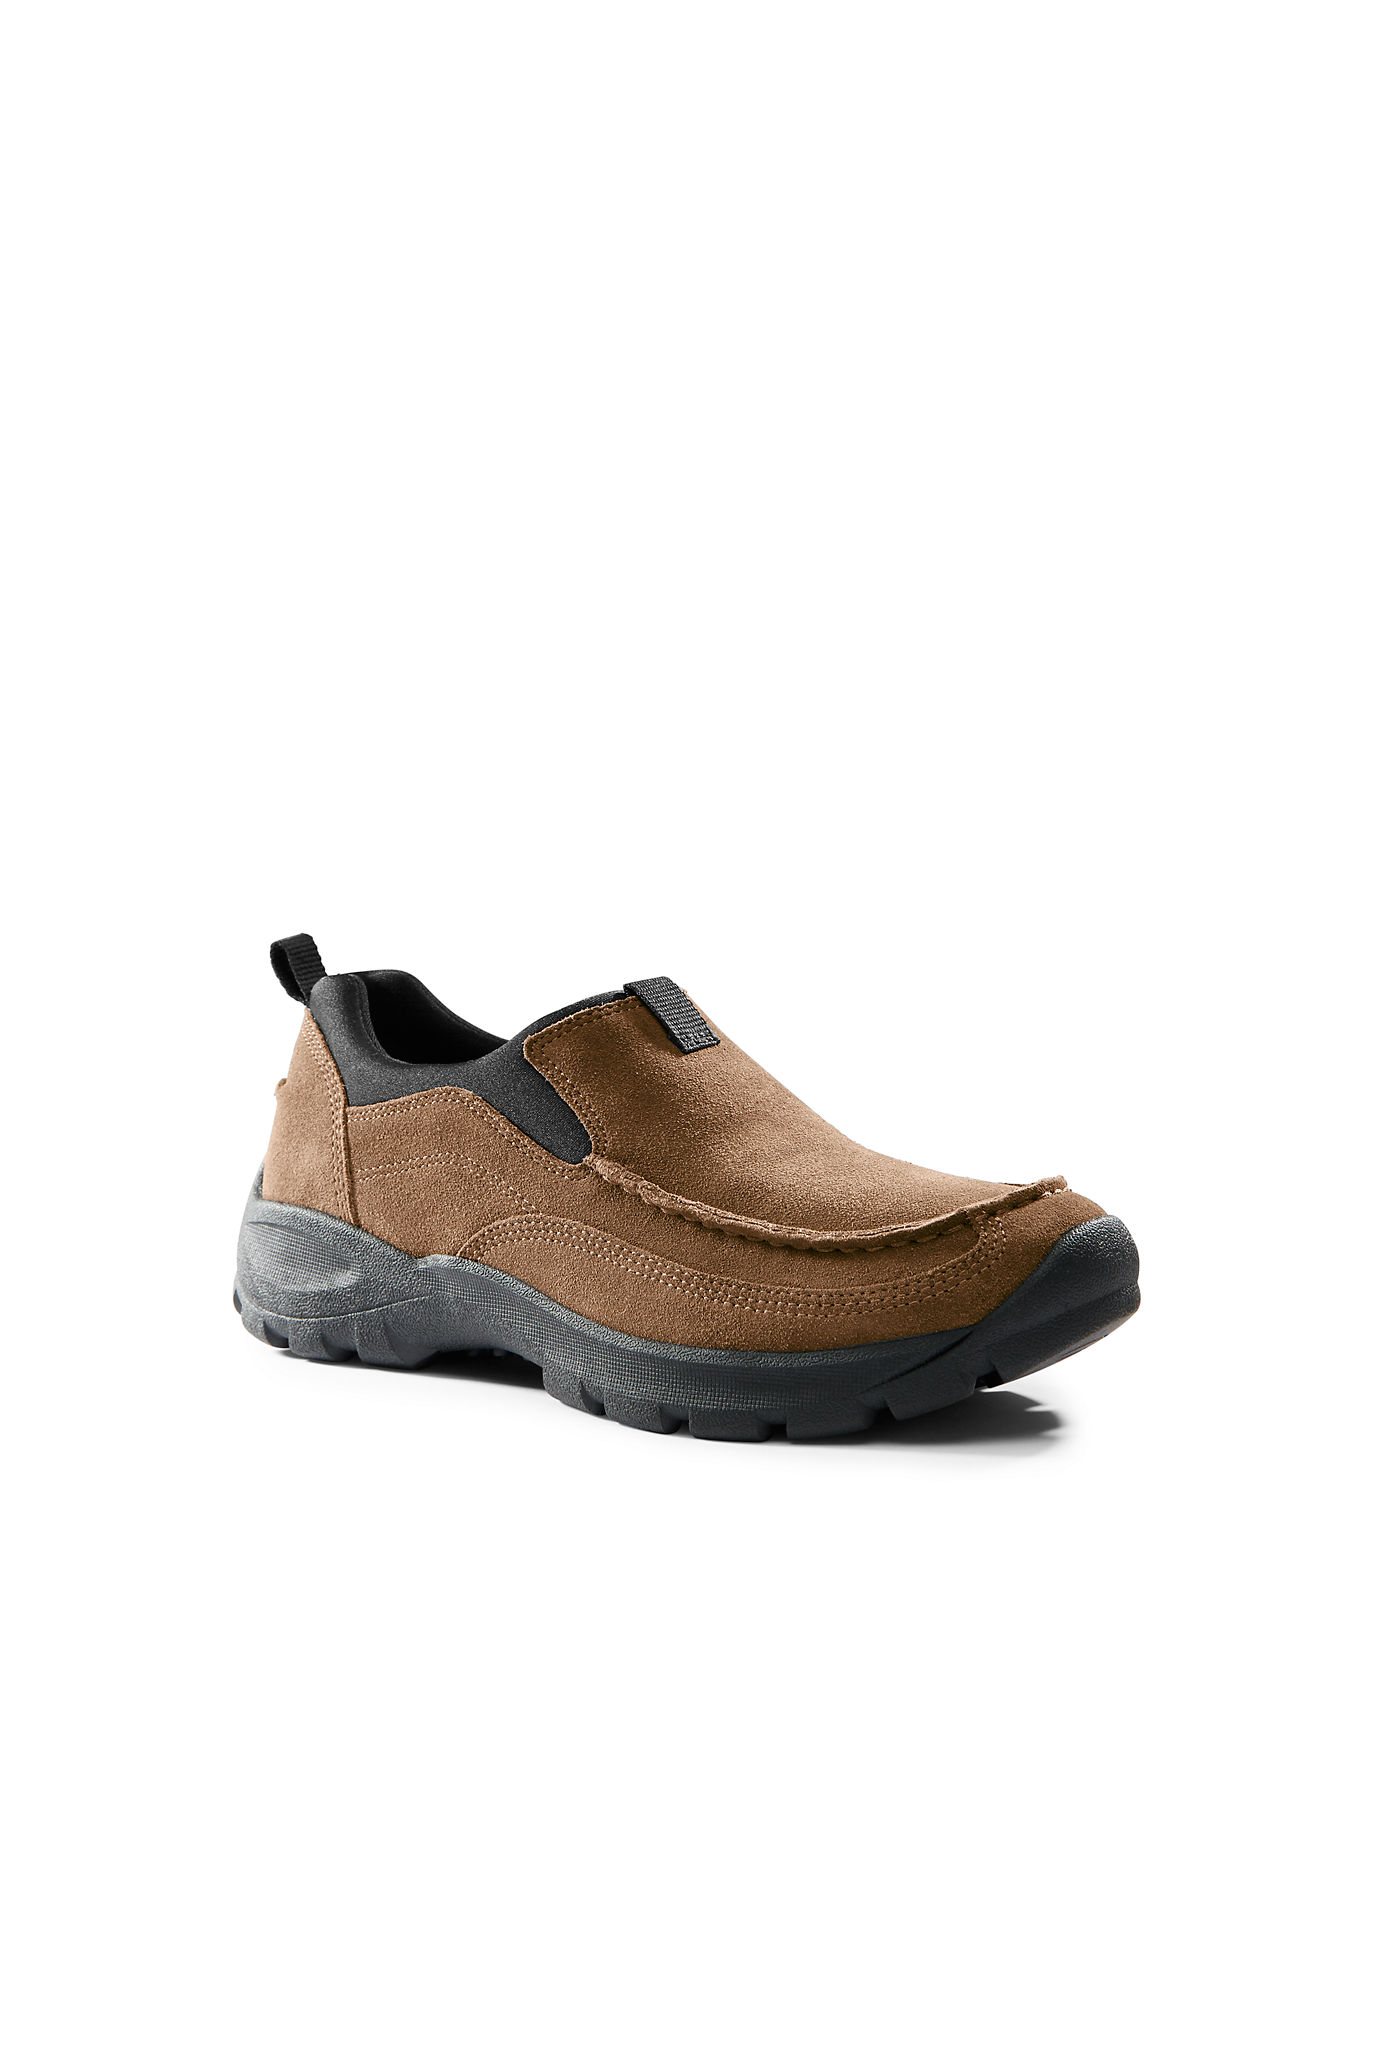 Men's All Weather Leather Slip On Moc Shoes